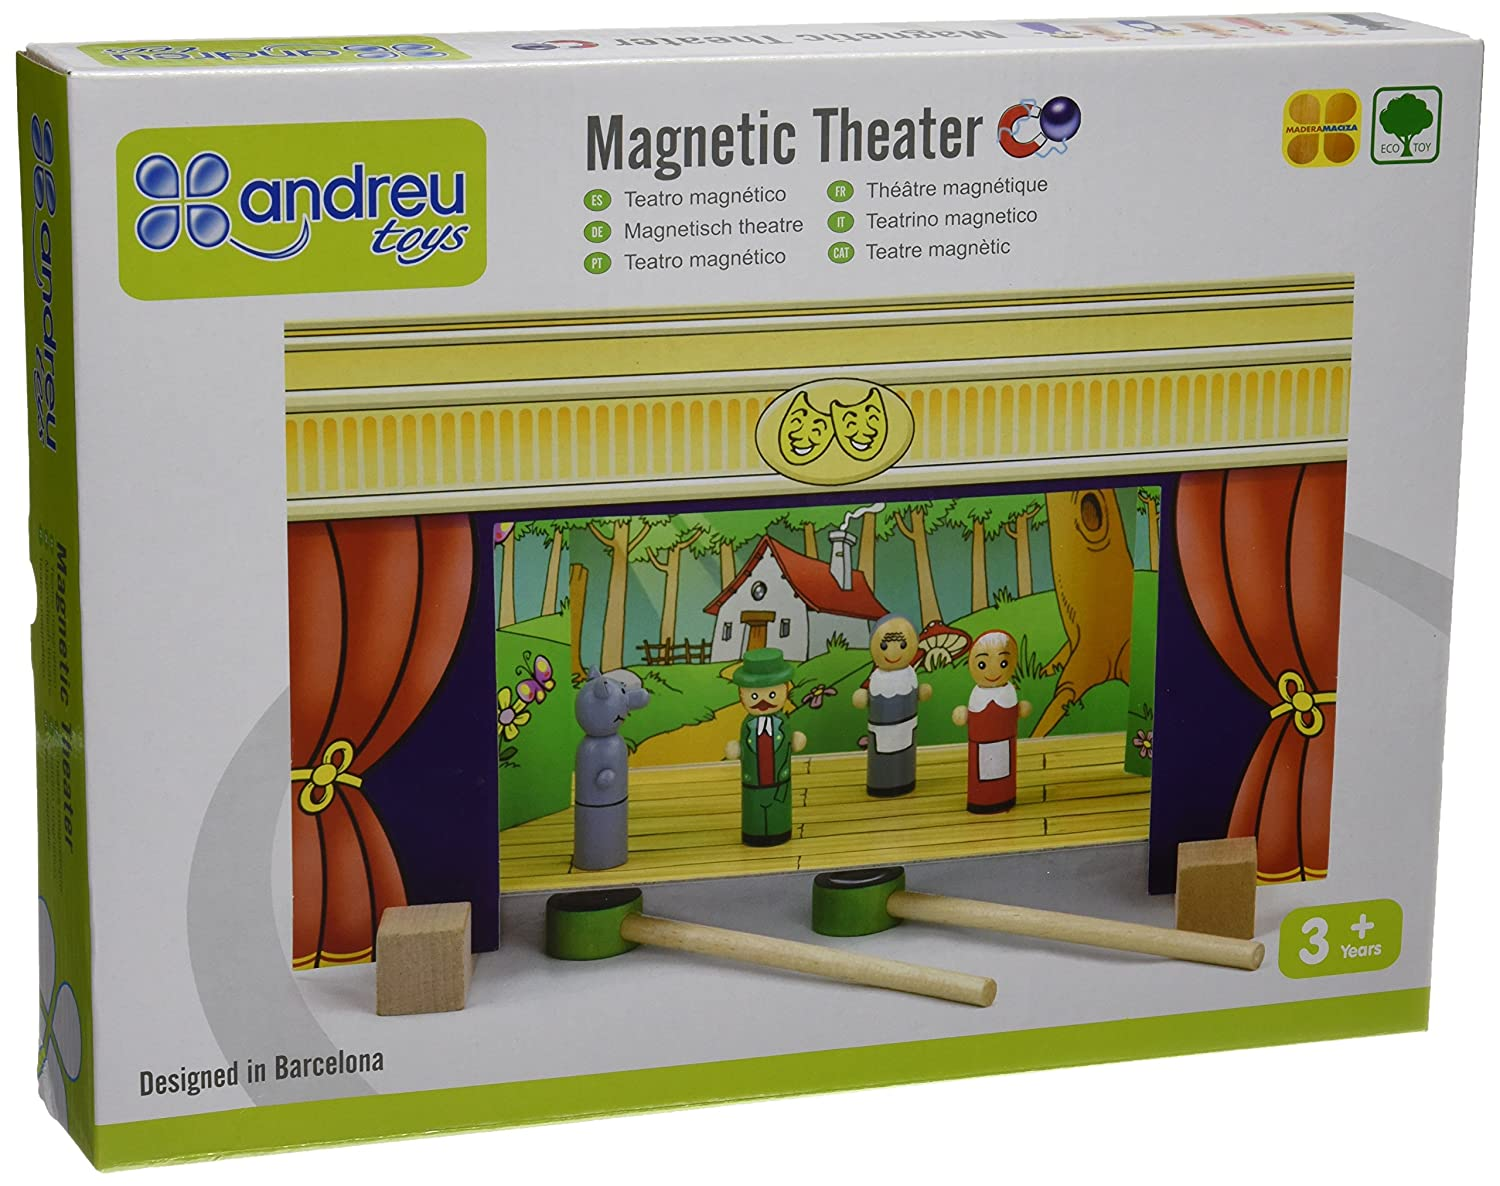 Andreu Toys 32 x 15 x 20.5 cm Magnetic Theatre Playset (Multi-Colour) 16005